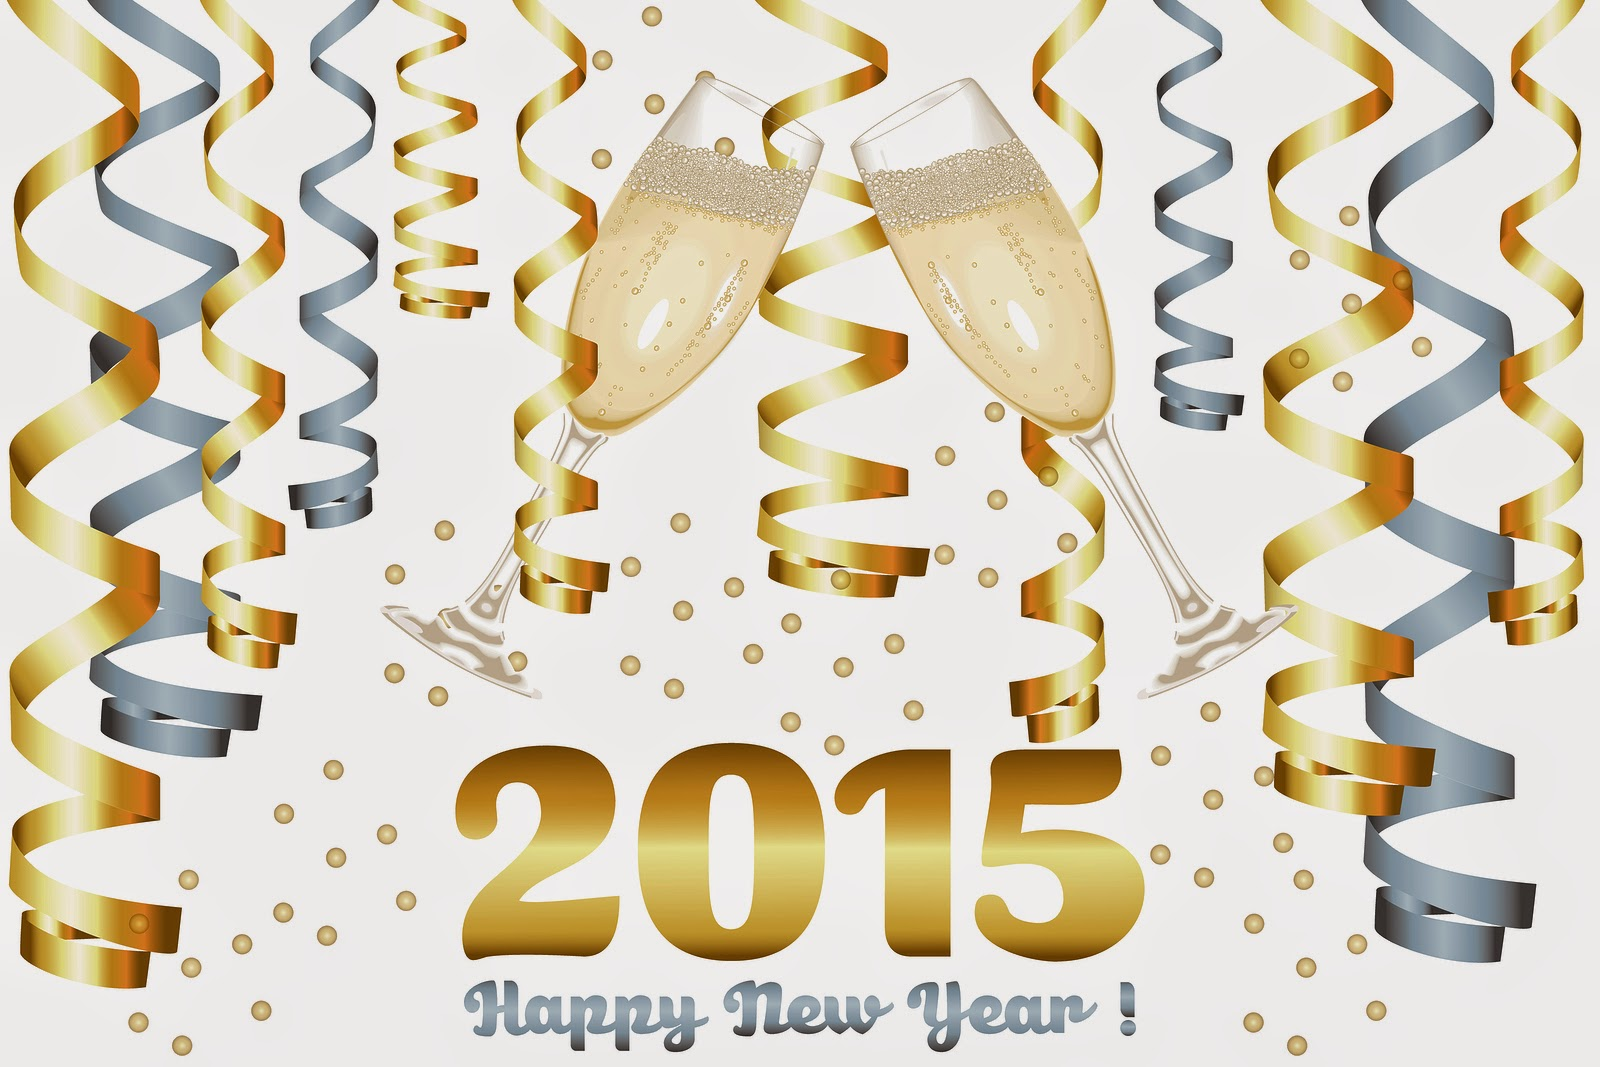 Happy New Year Pics 2015